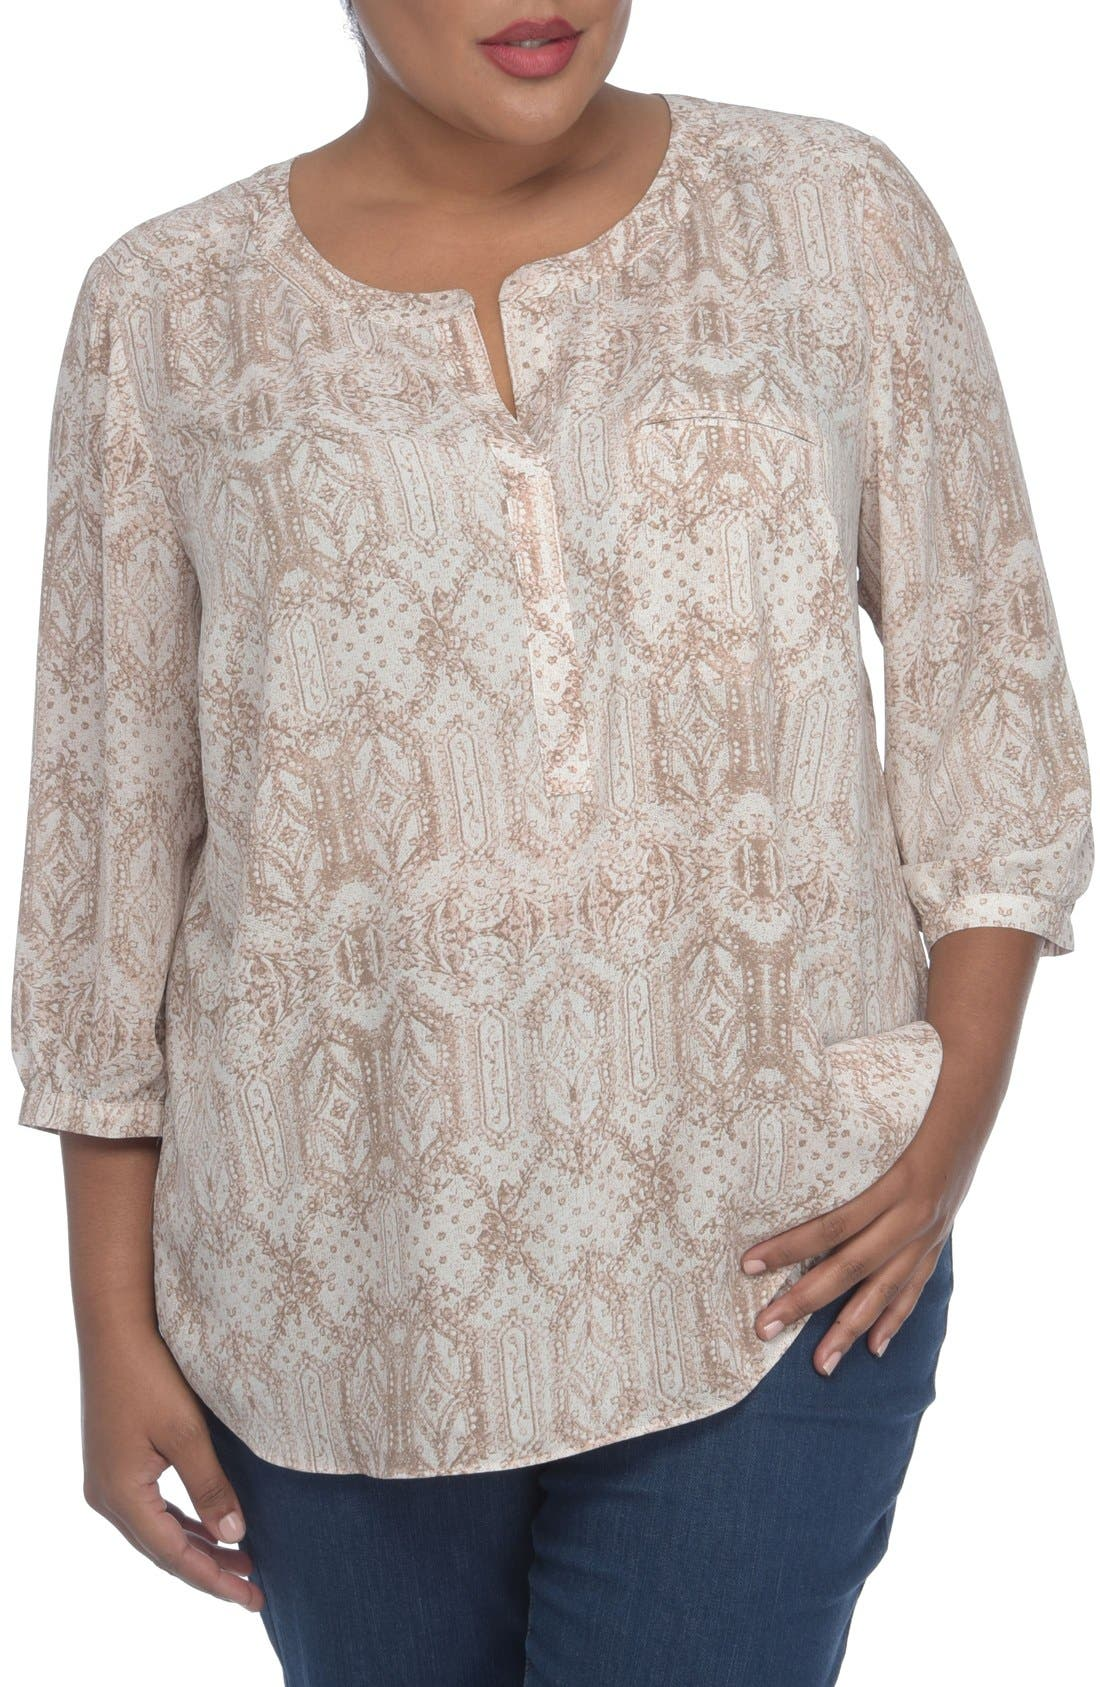 Alternate Image 1 Selected - NYDJ Henley Top (Plus Size)